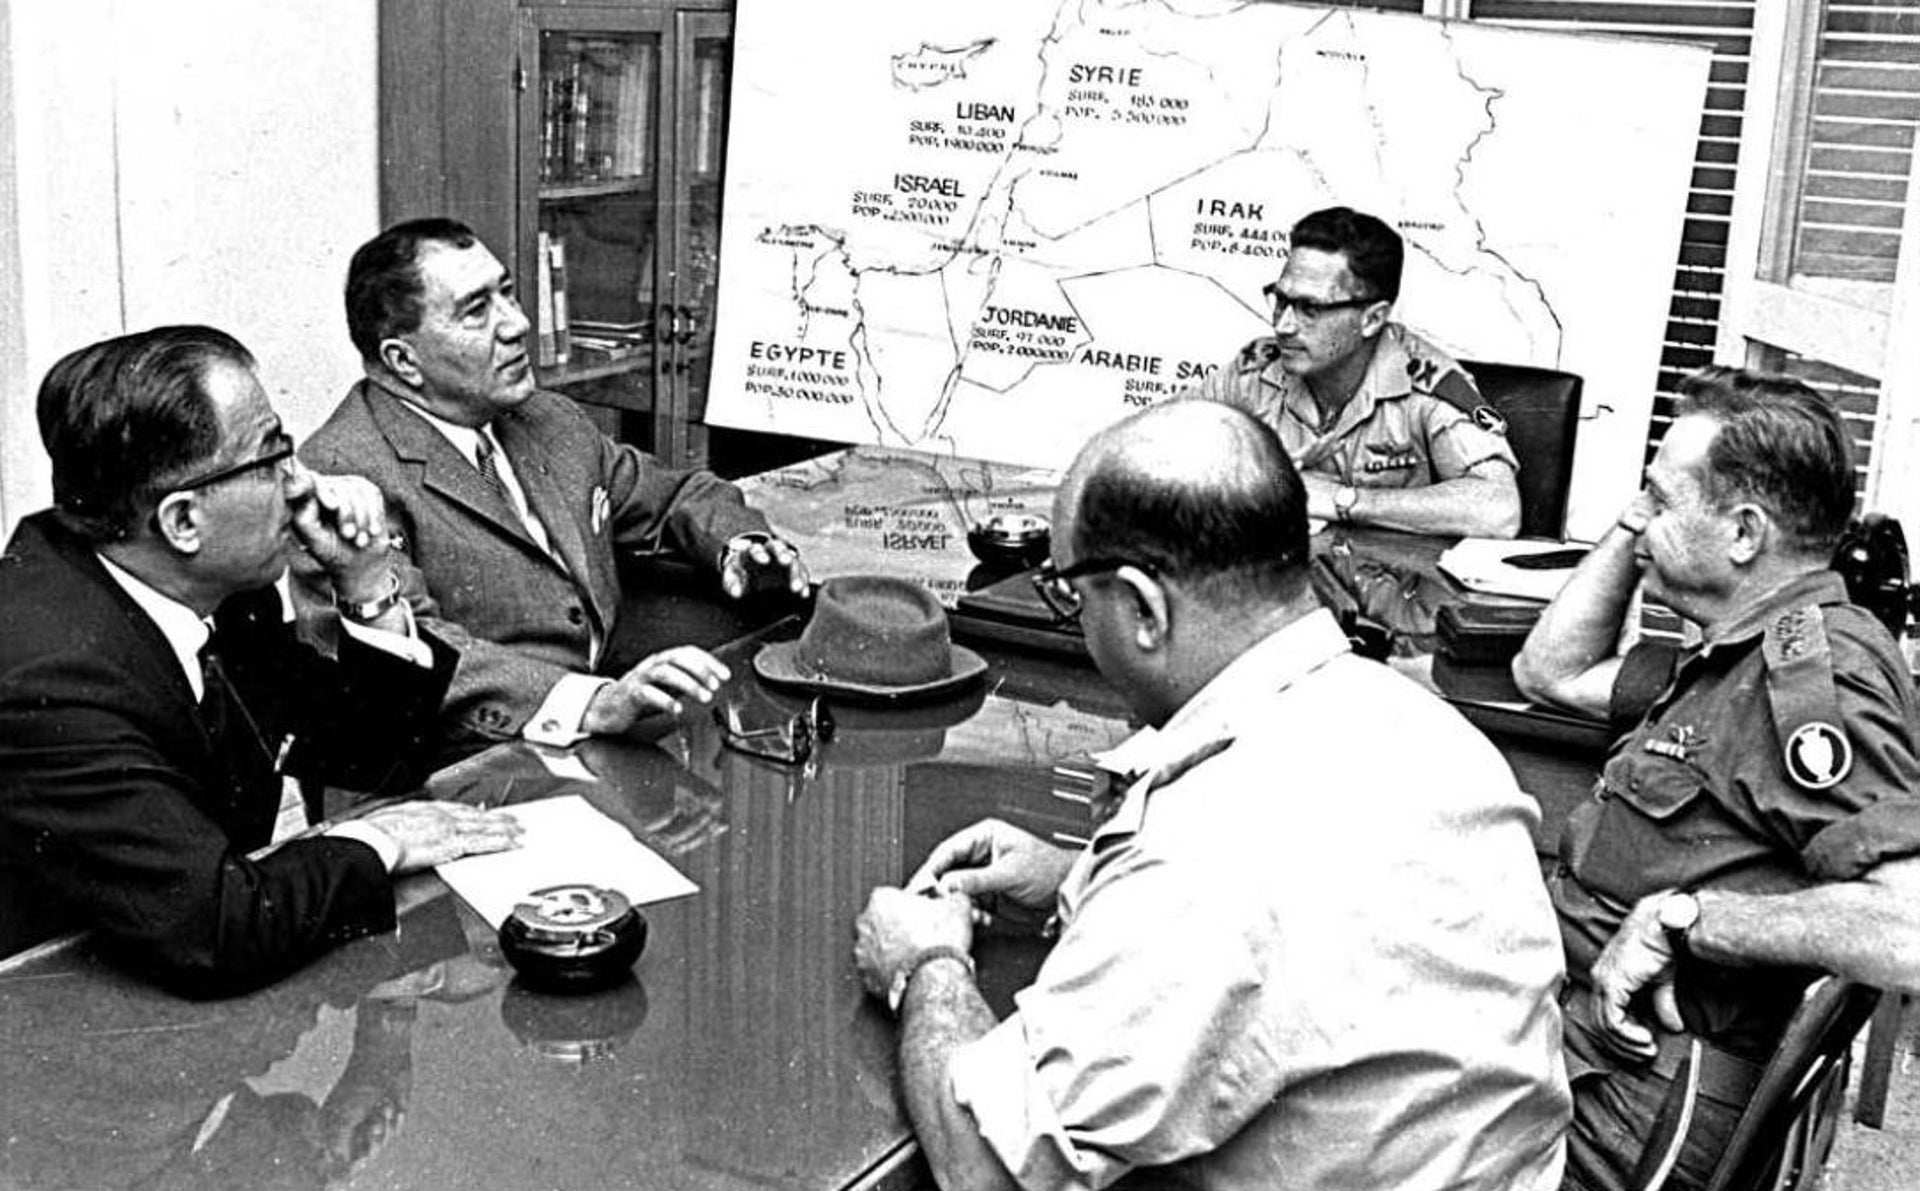 Senior Iranian defense officials with Israeli counterparts at the IDF headquarters, 1975